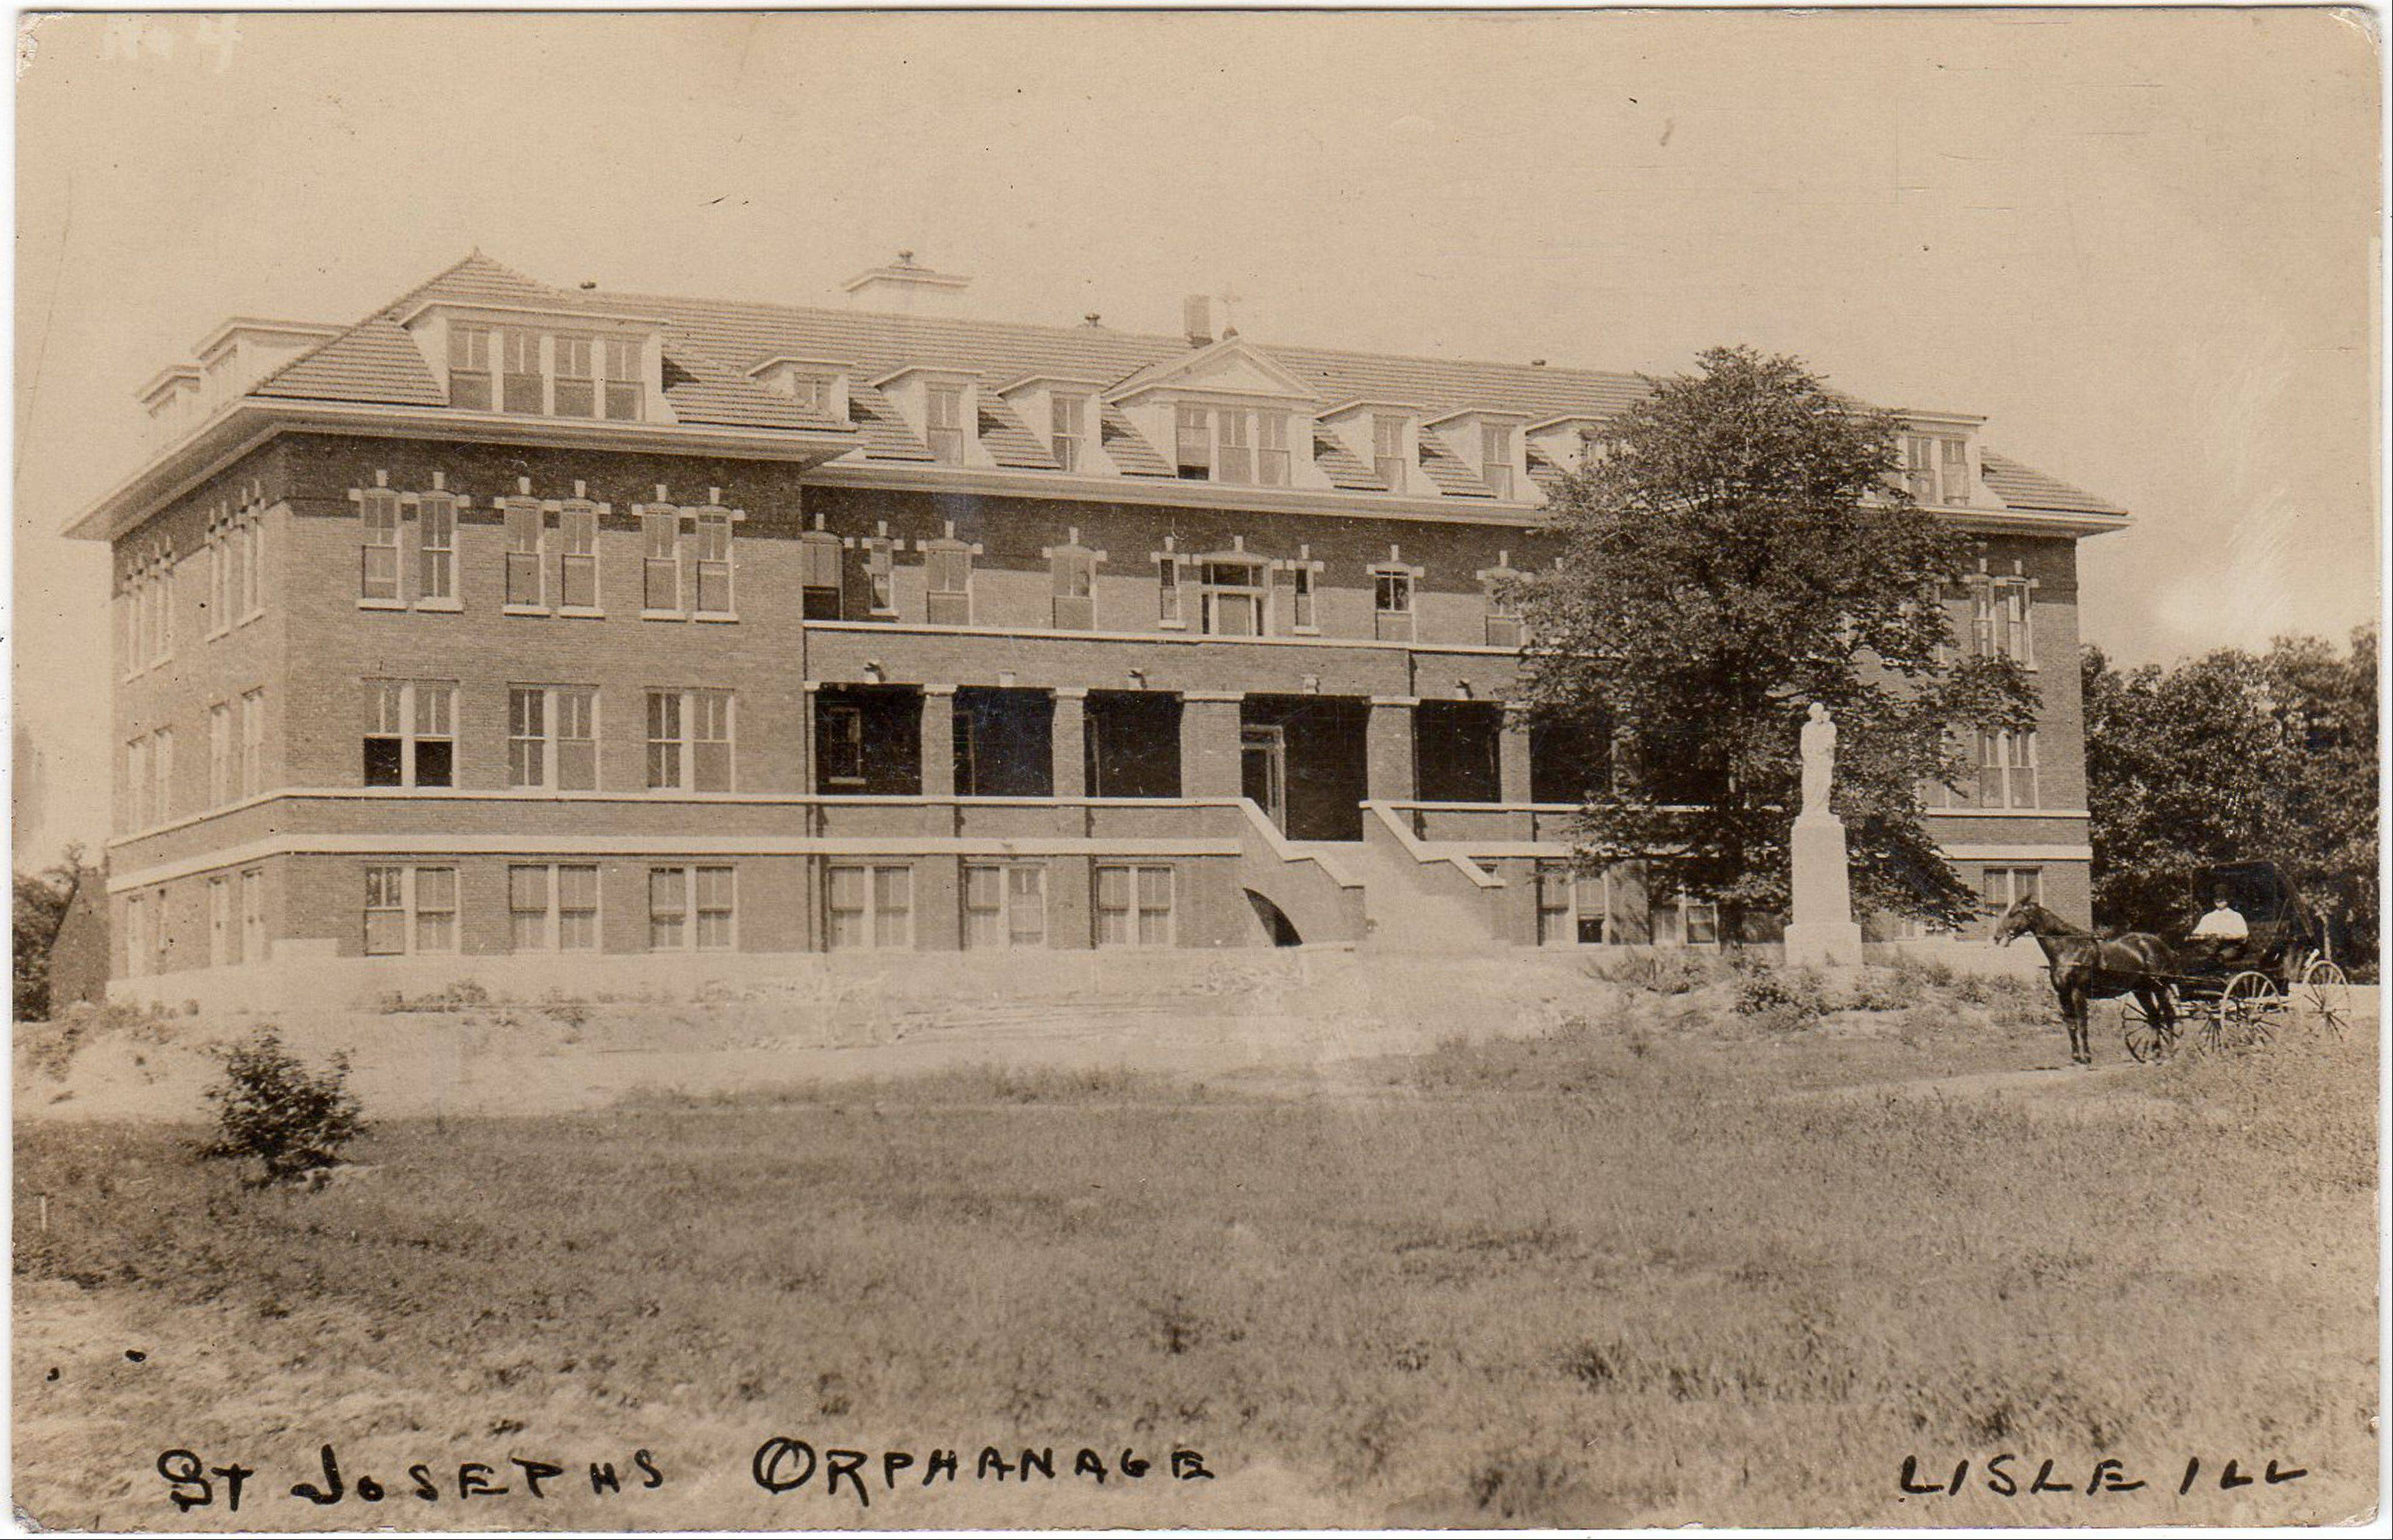 Once the St. Joseph's Bohemian Orphanage, the stately building on this postcard now is the heart of the Benet Academy campus.